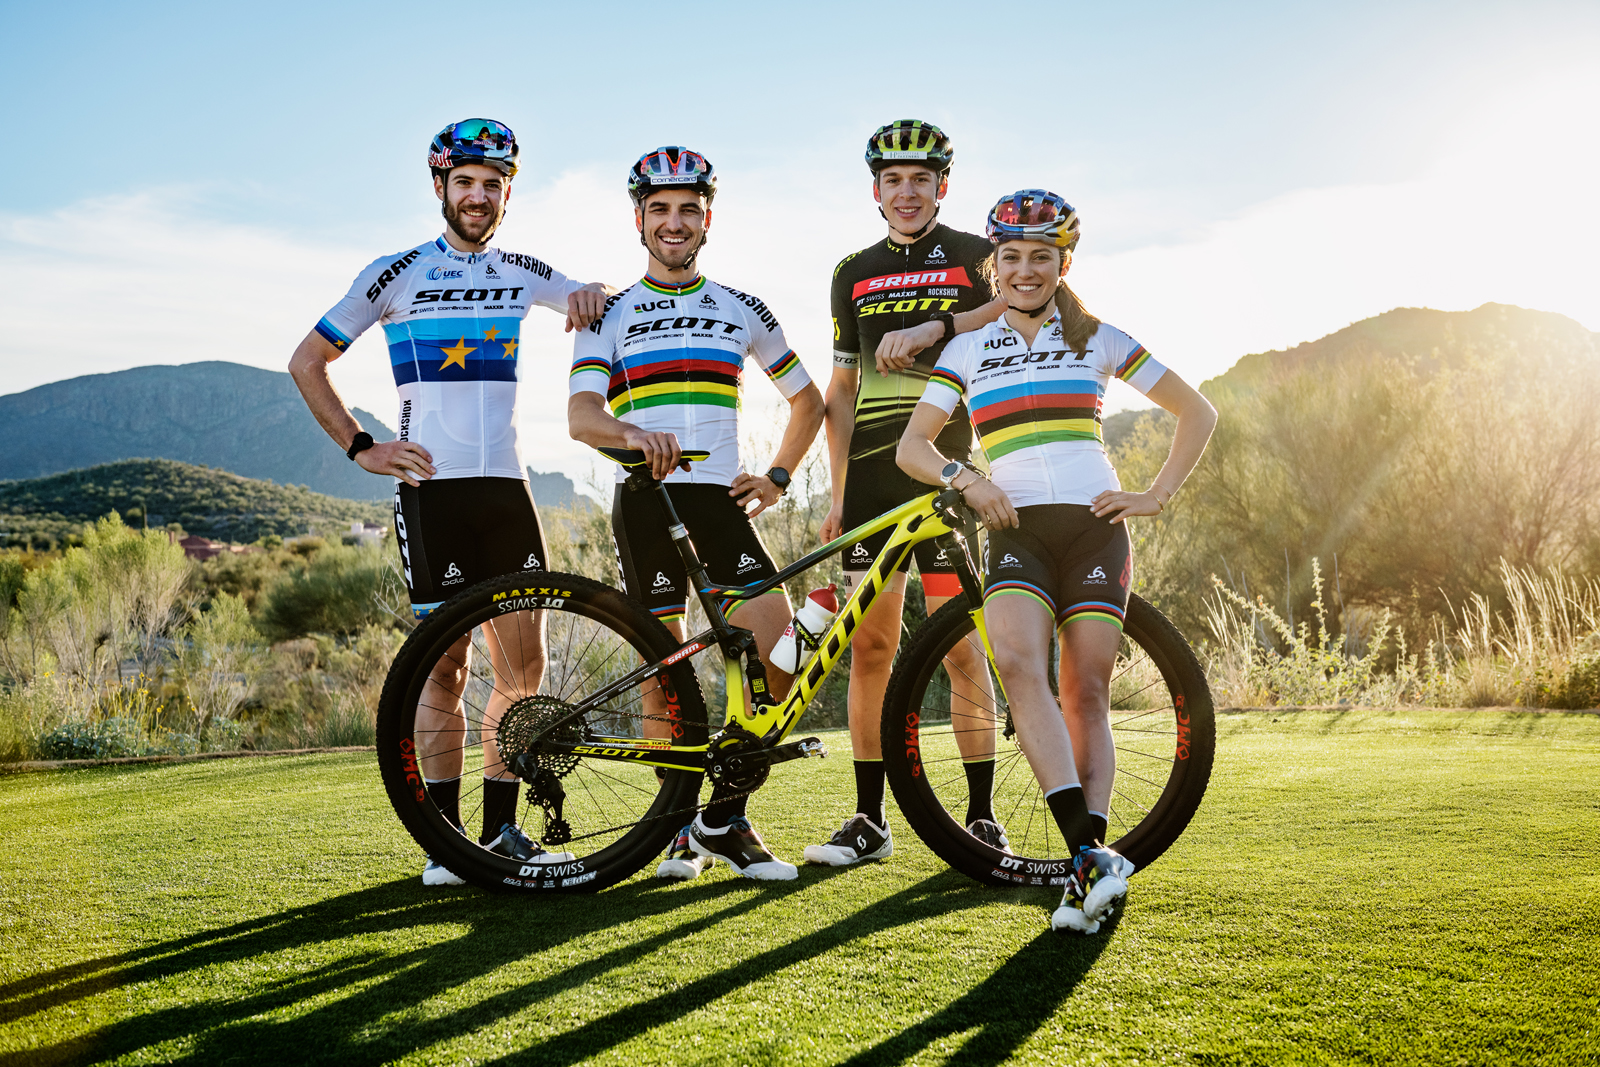 Scott-Sram MTB racing team vol optimisme naar Cape Epic